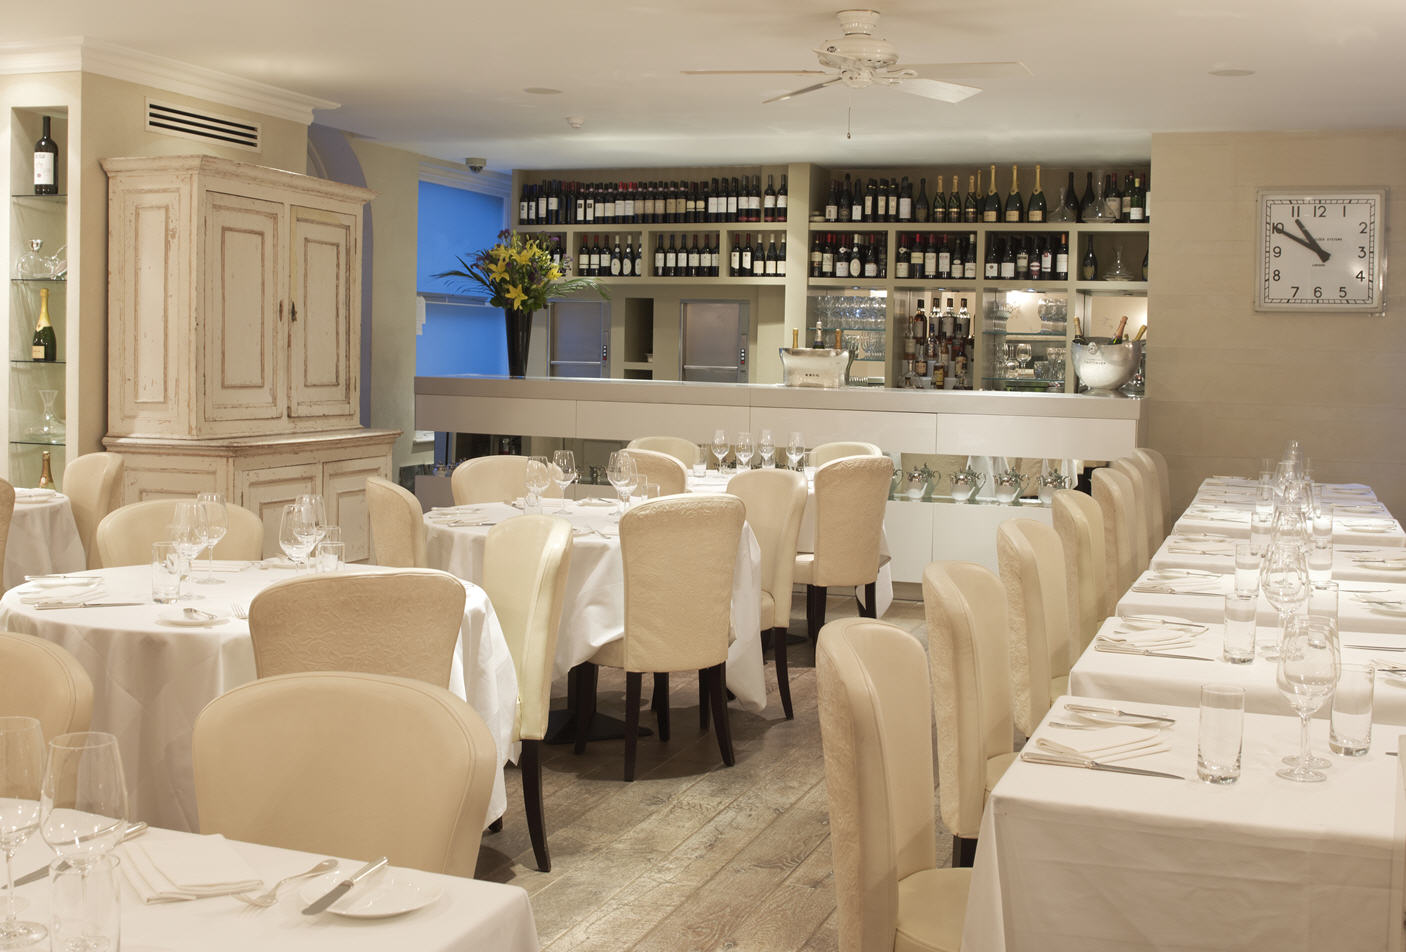 Exclusive dinning at Mews of Mayfair